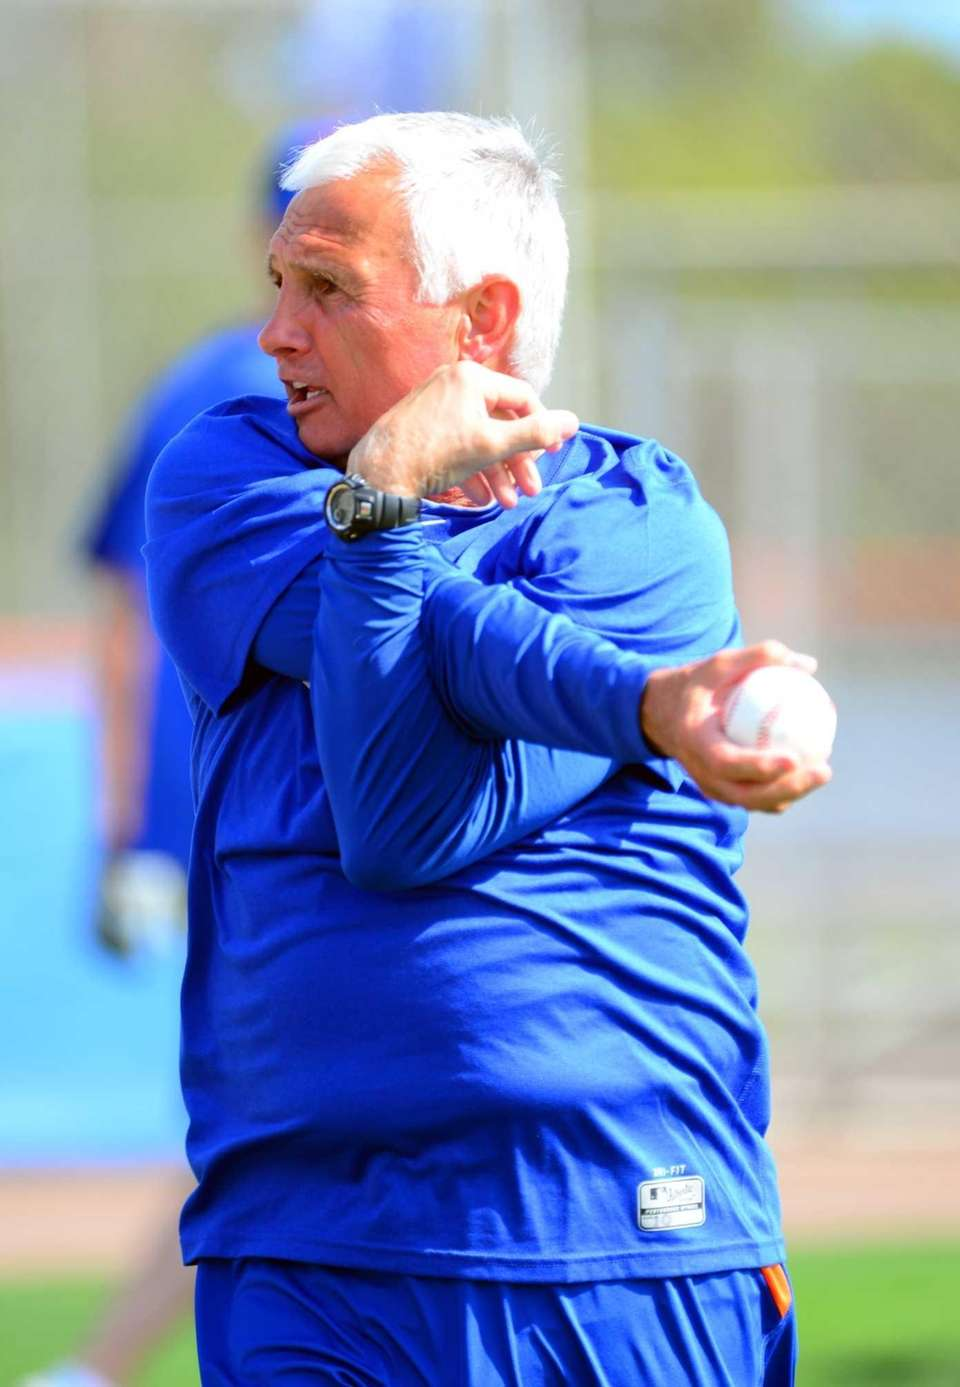 Mets manager Terry Collins stretches during spring training.